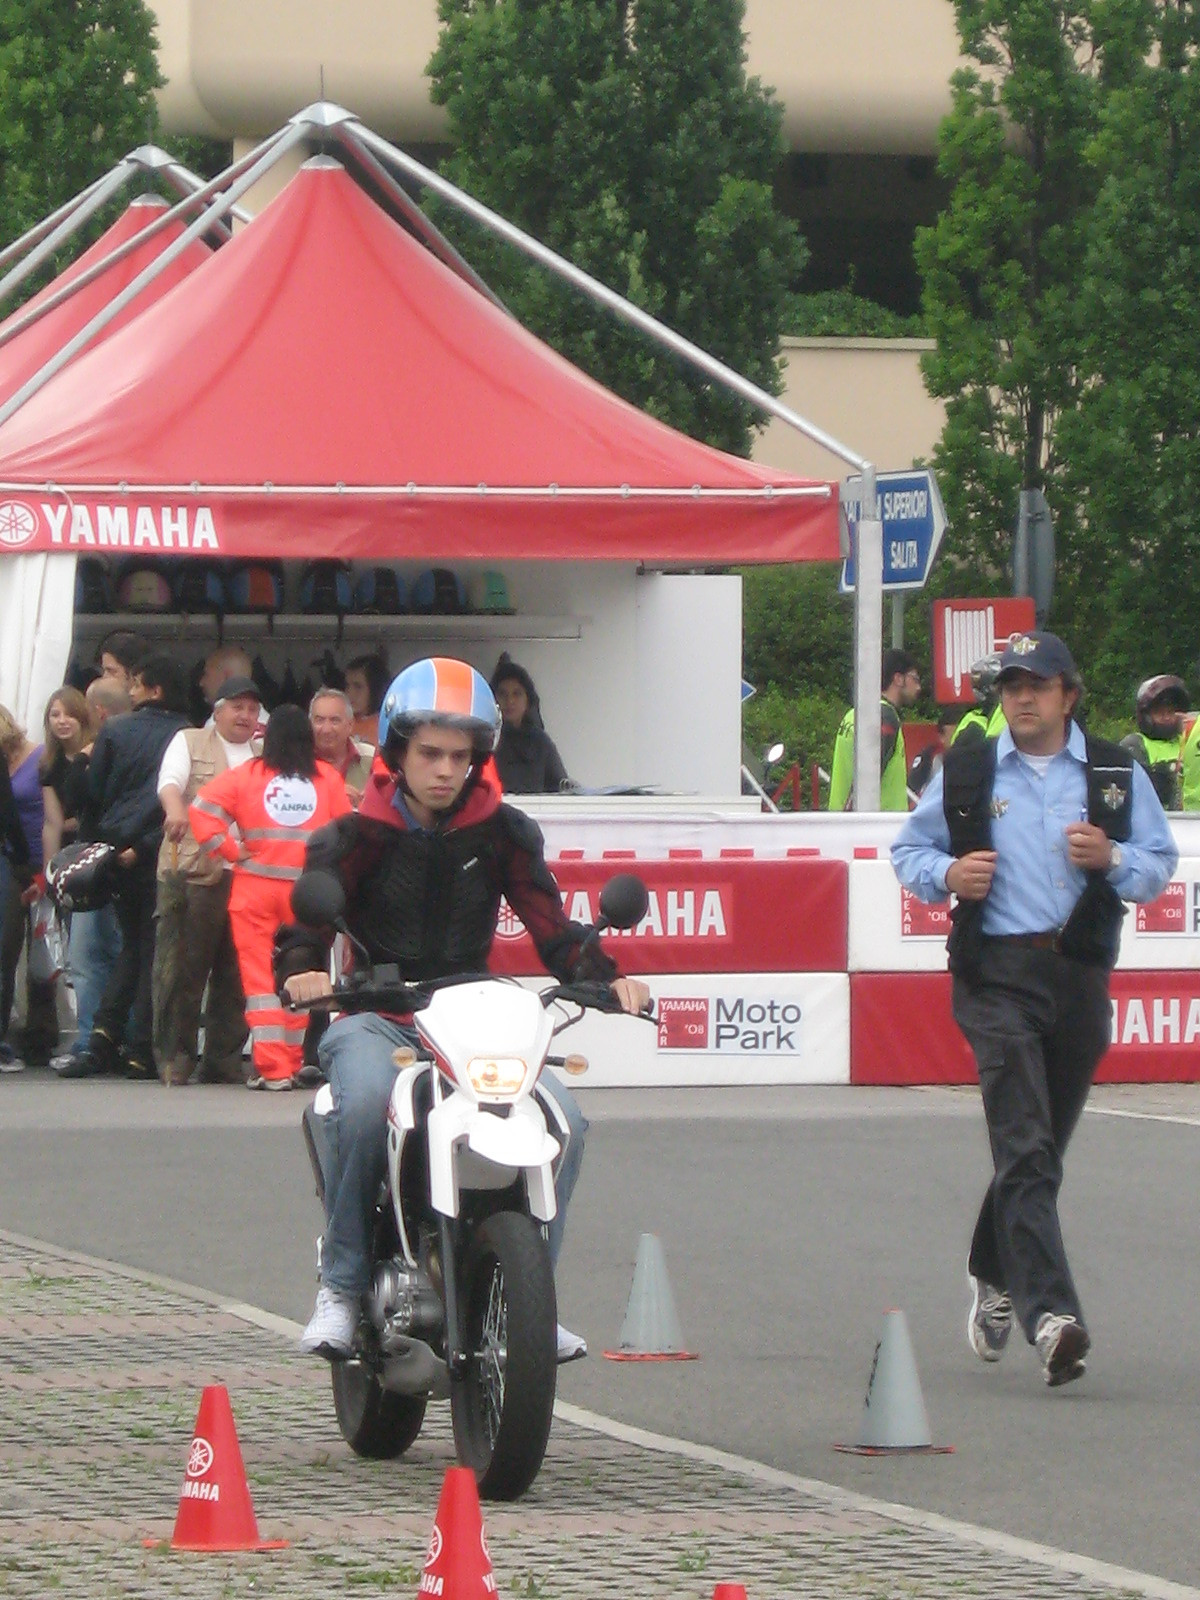 yamaha sponsorship sport marketing